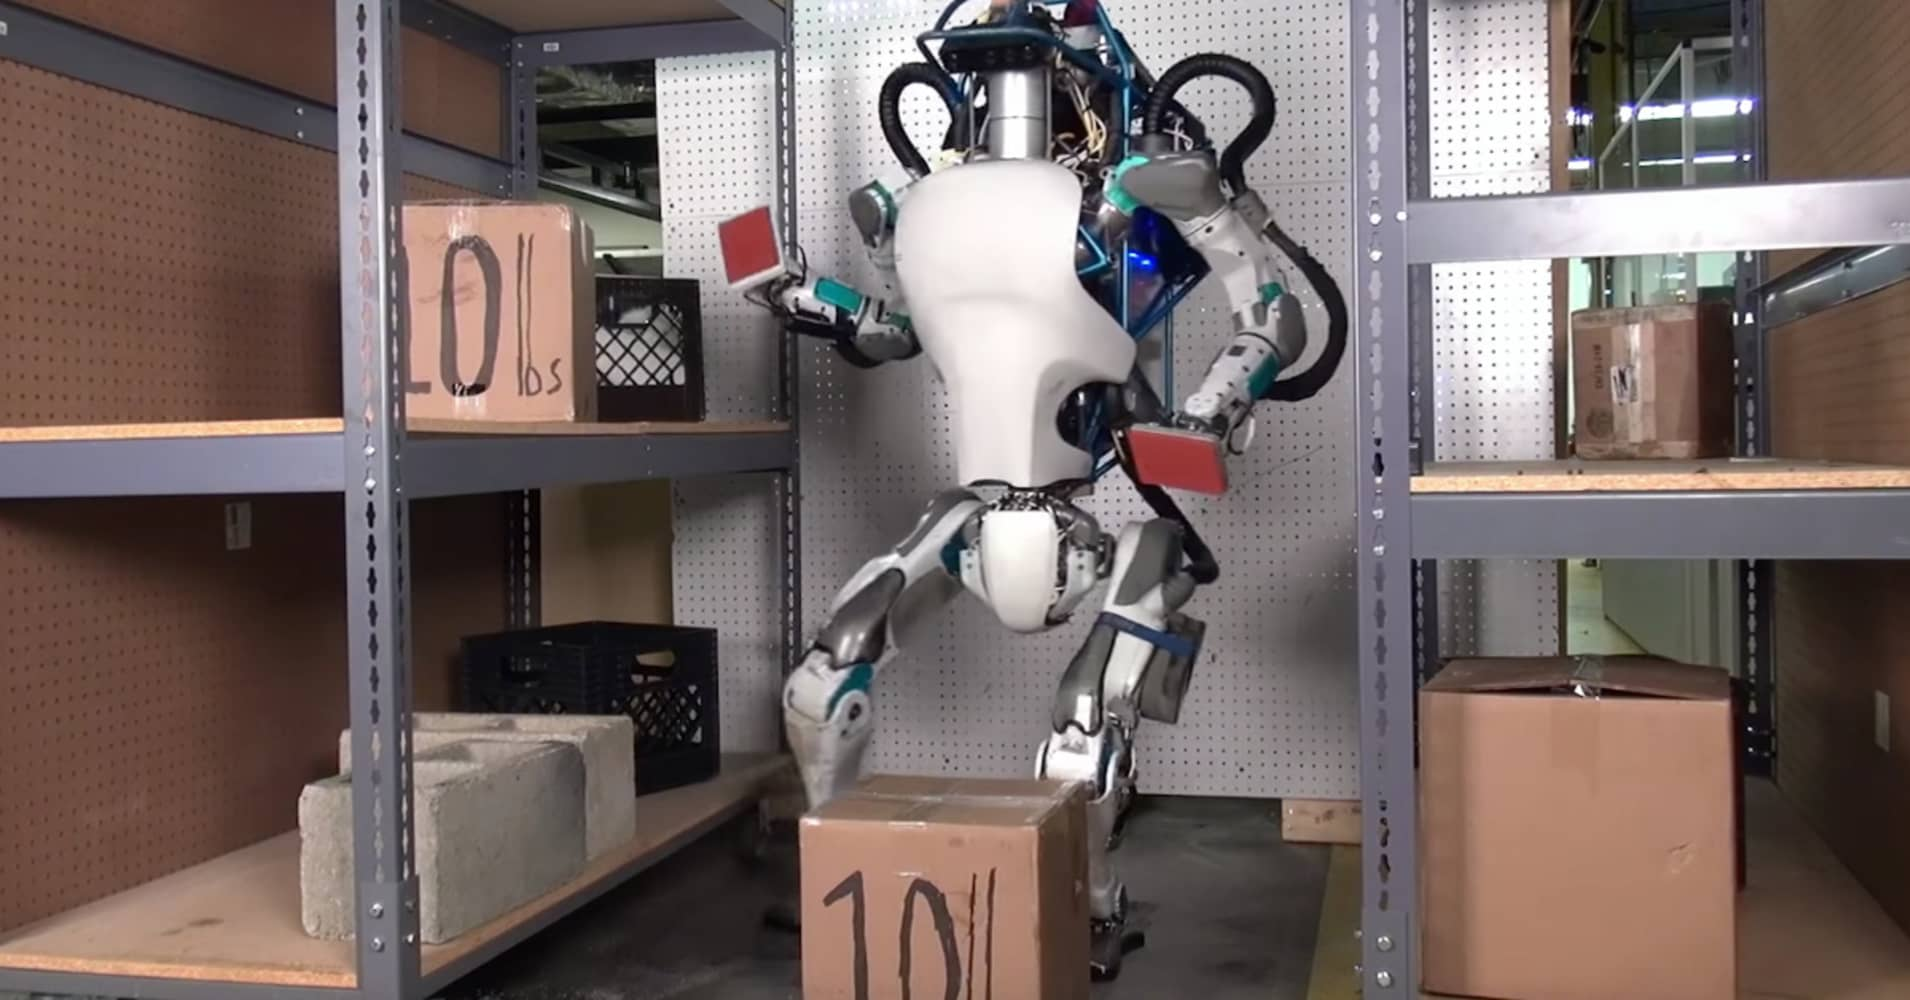 What Is Future Of Libraries >> Google robot is 'the end of manual labor': VC